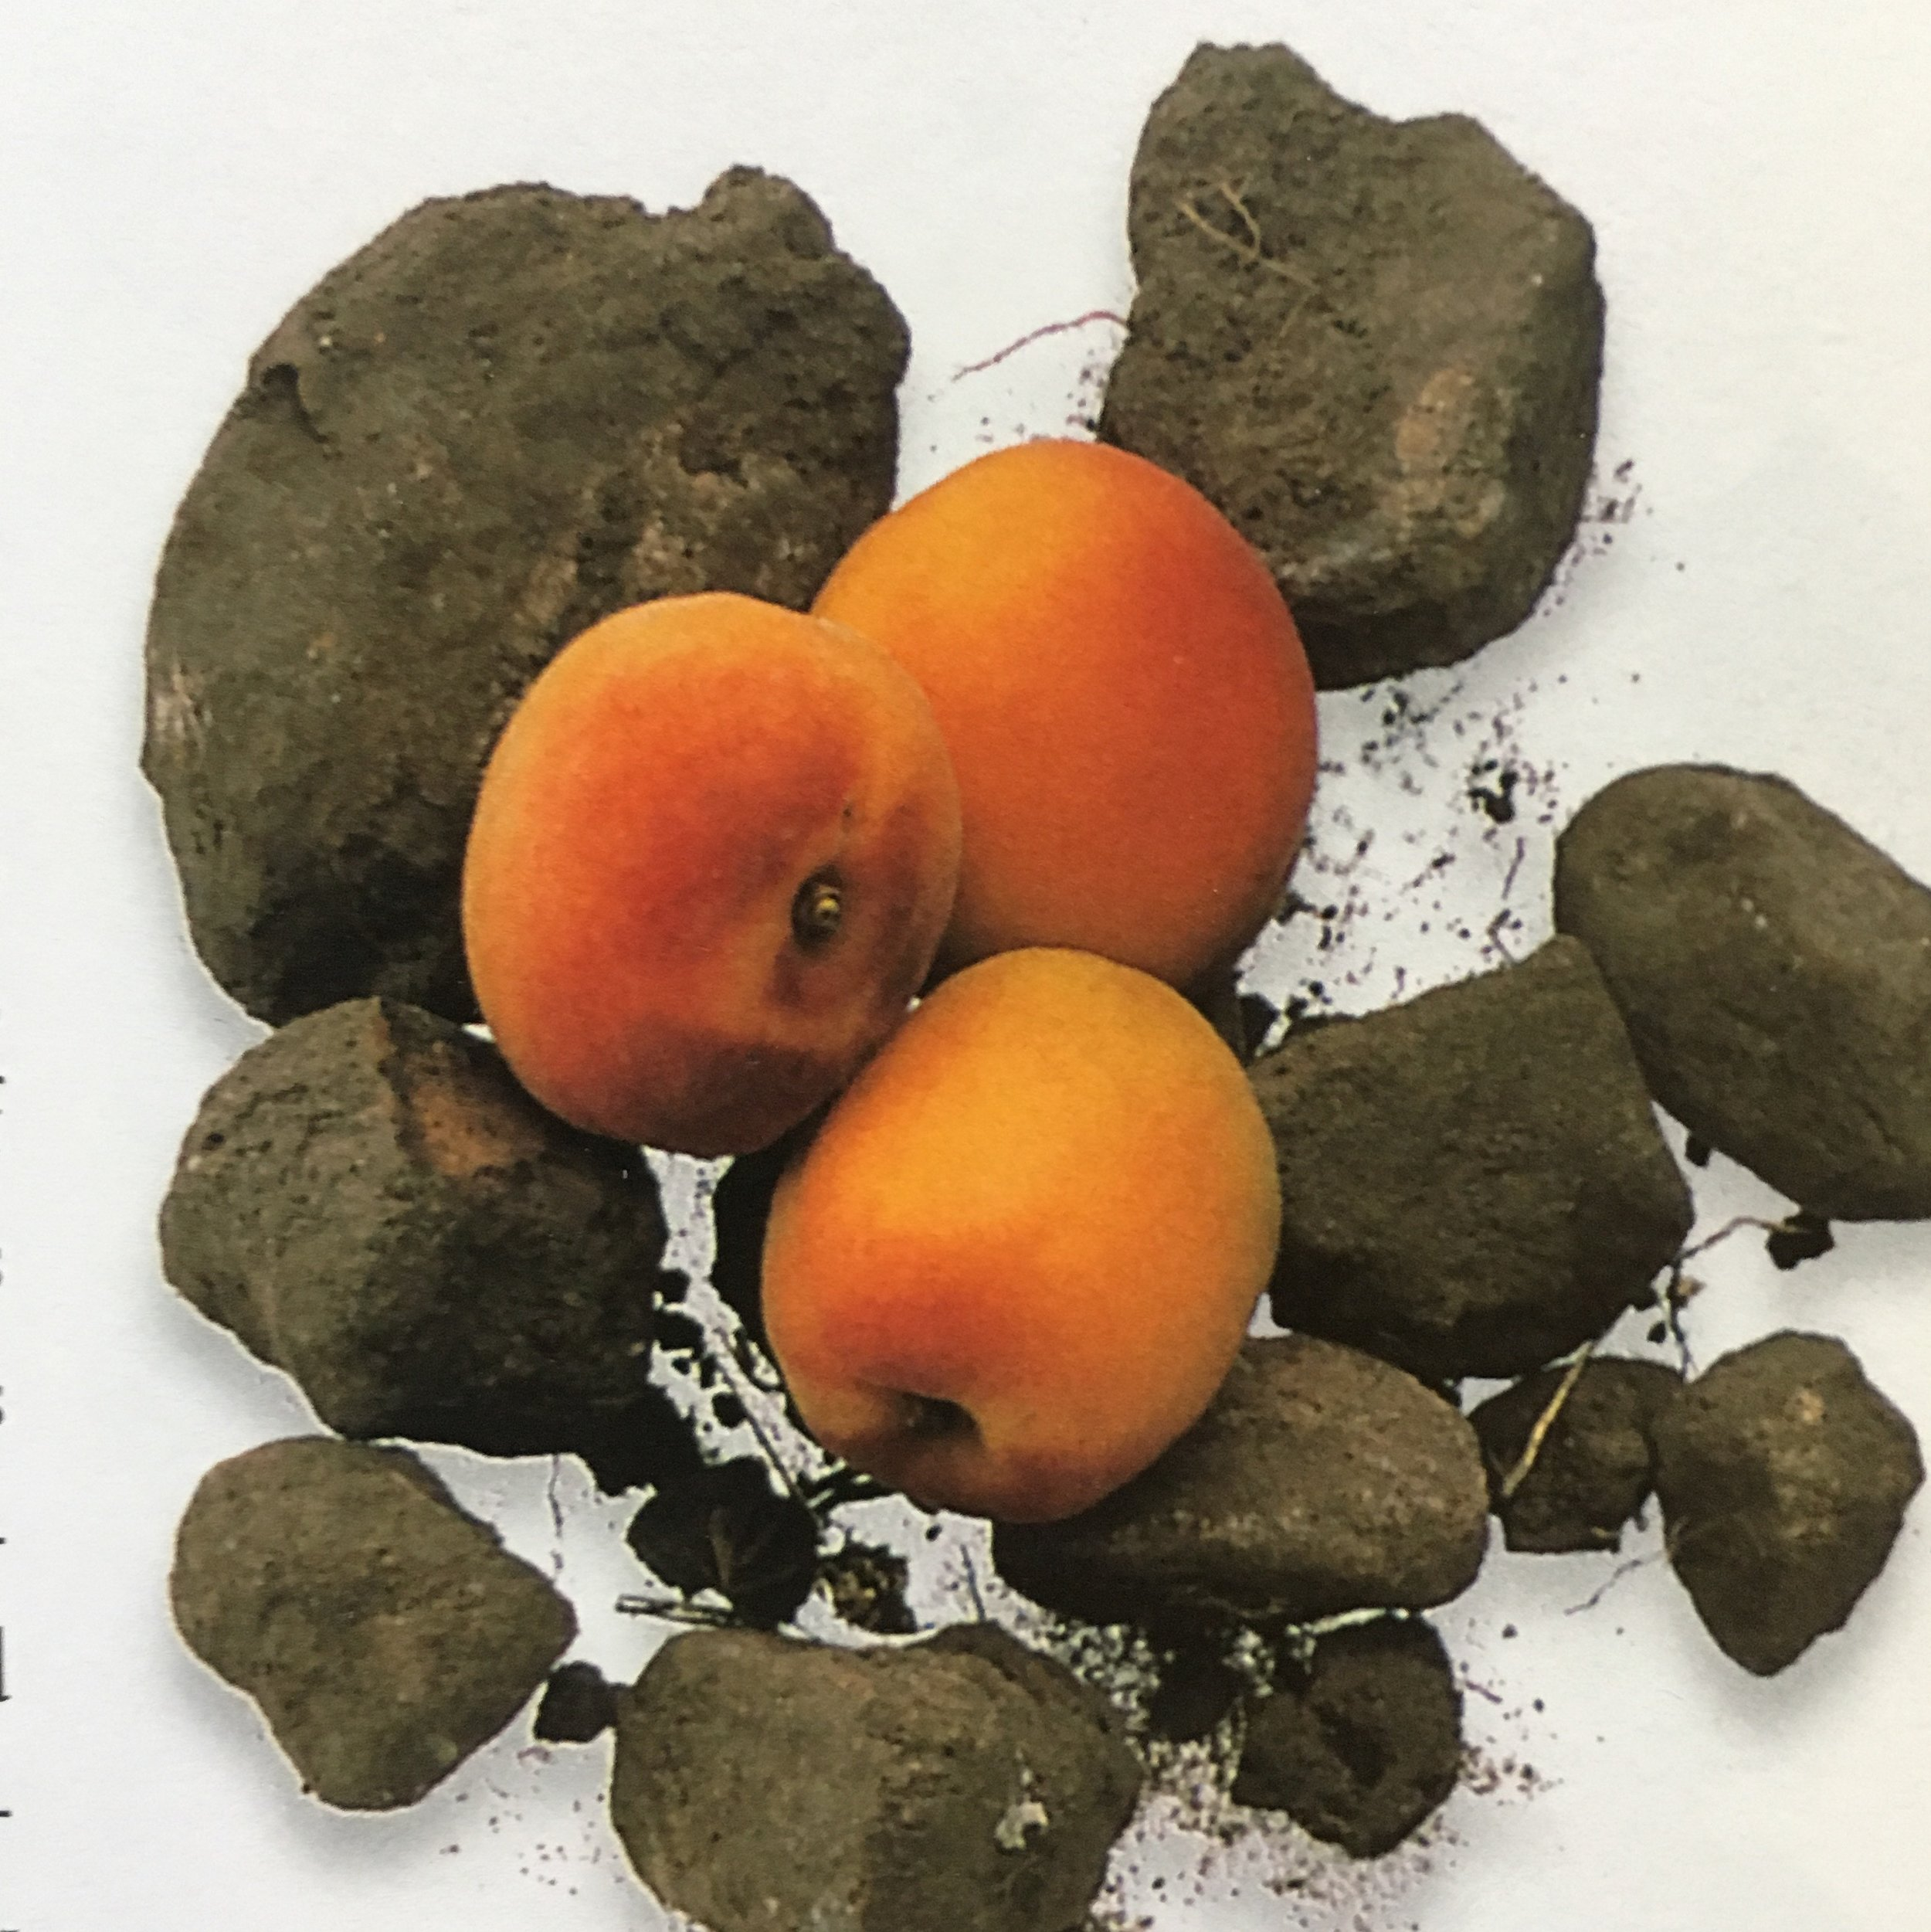 Sandstone and Apricots